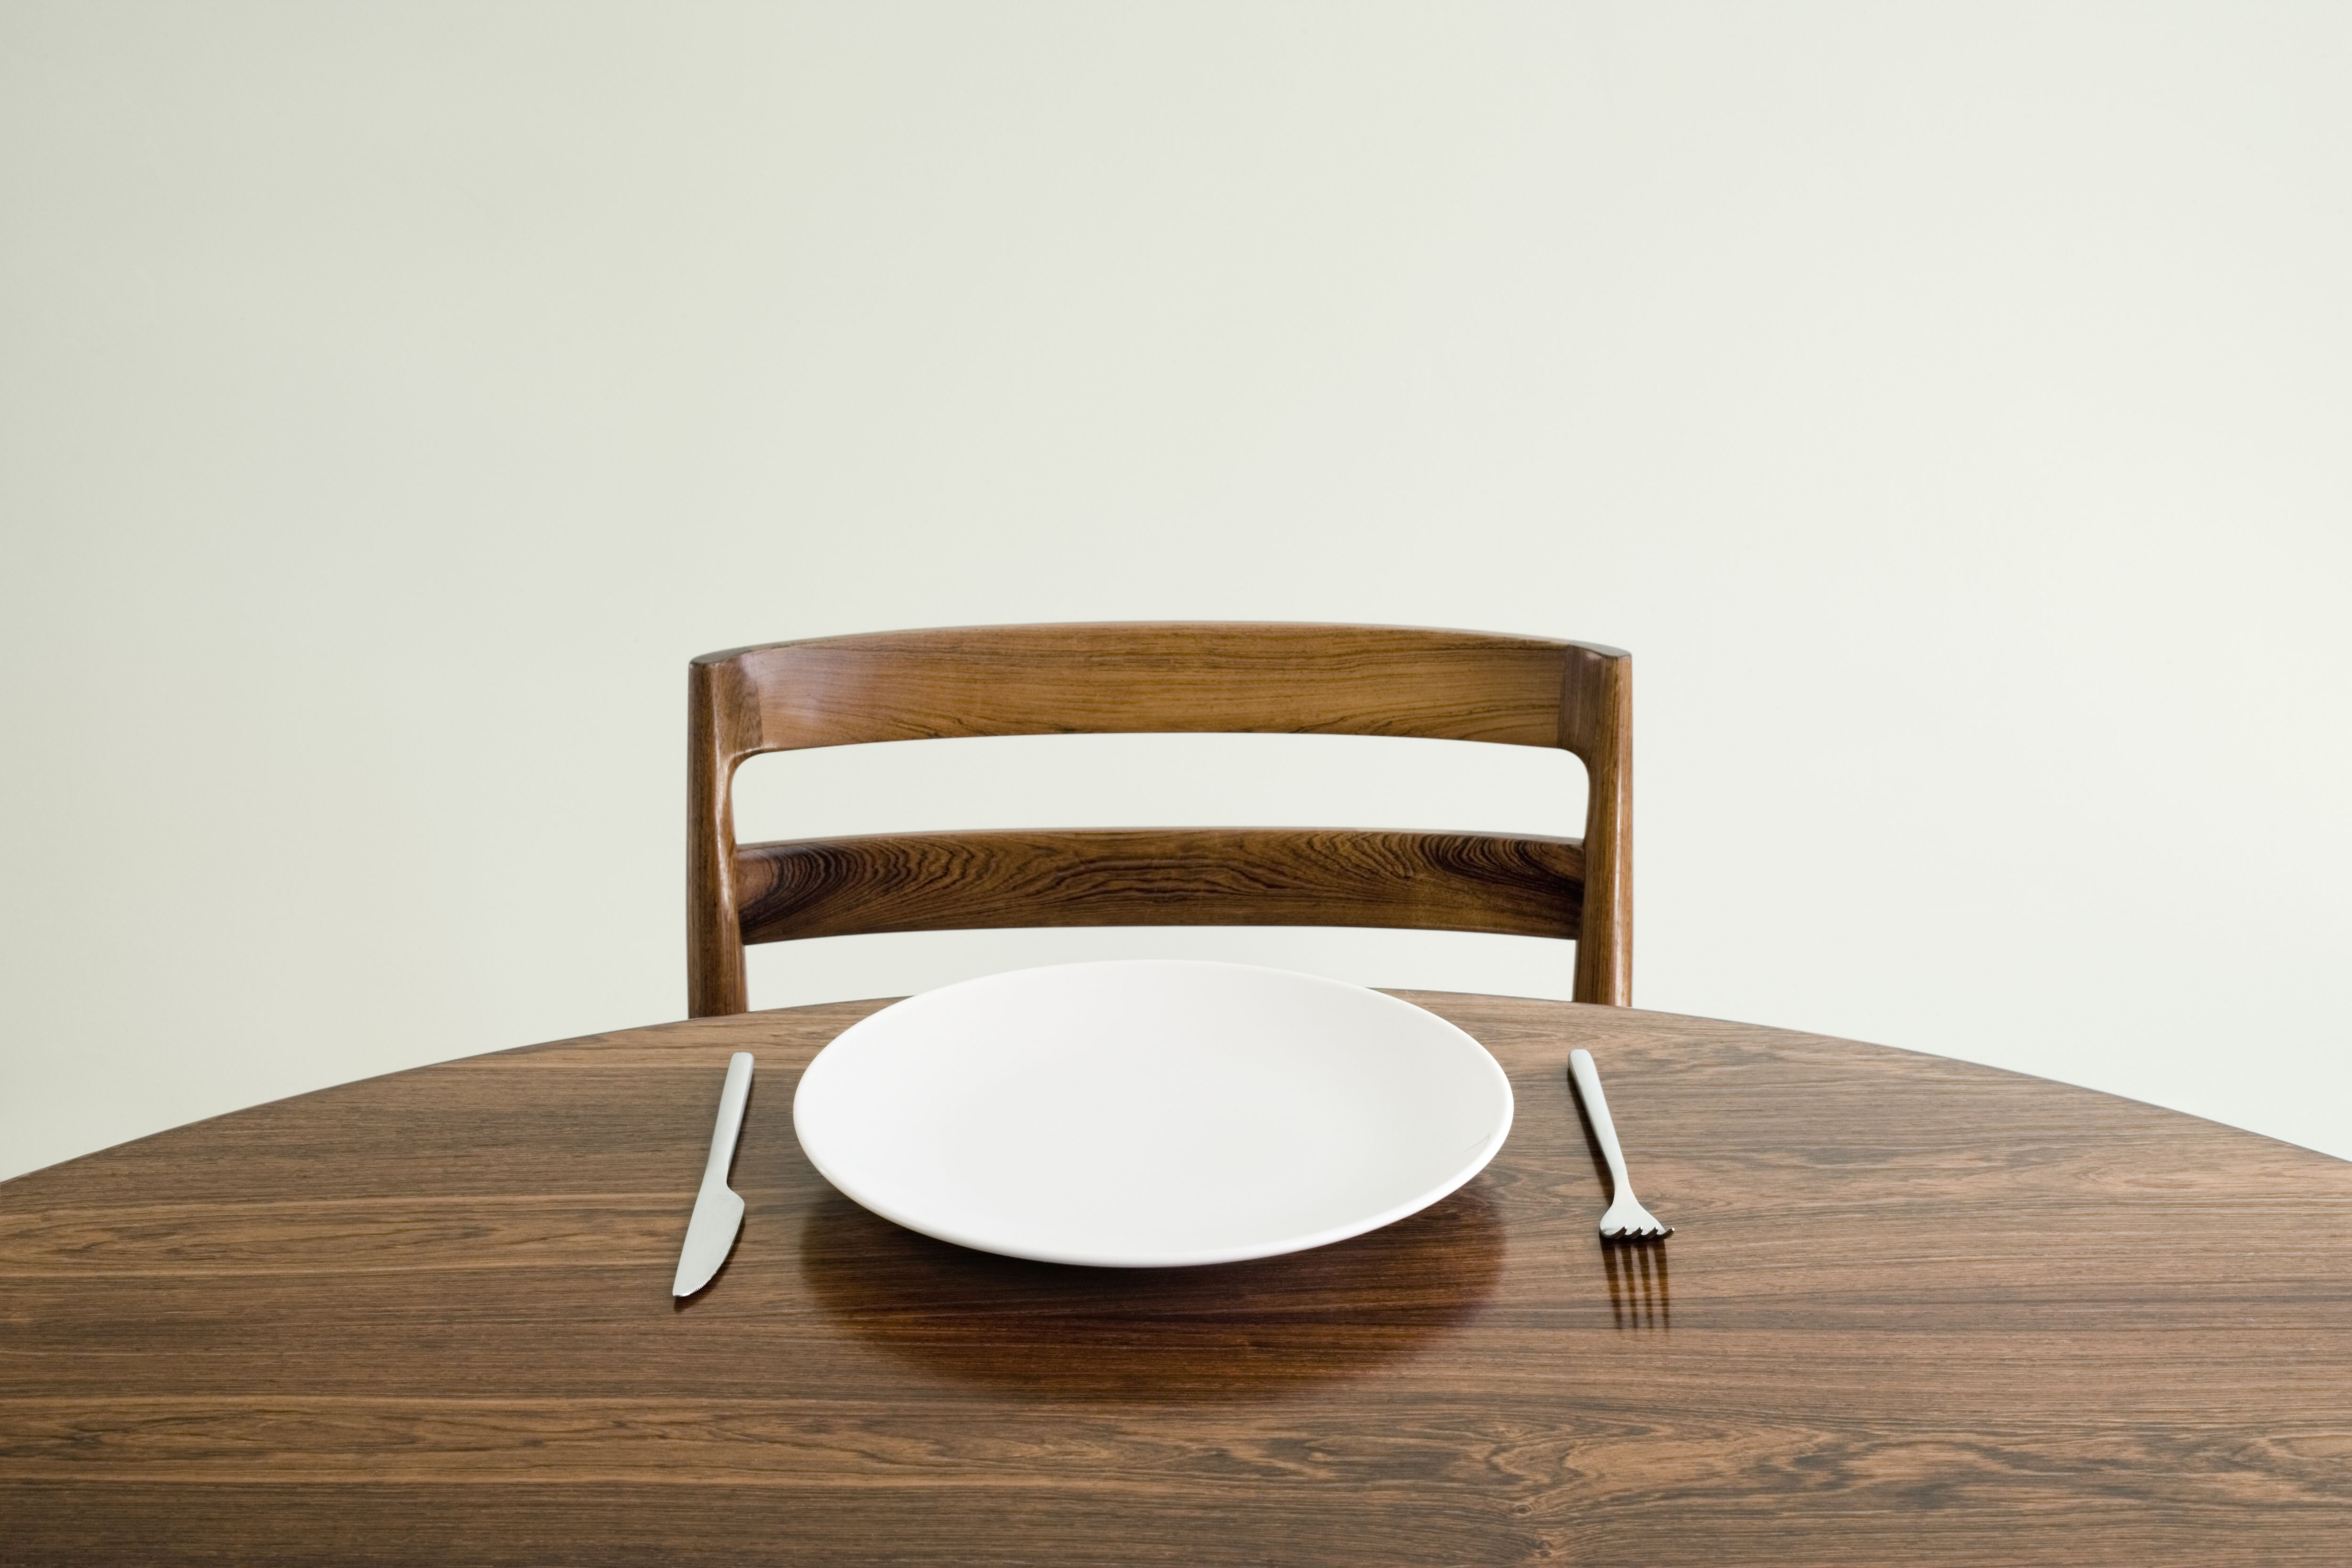 Empty plate and place setting